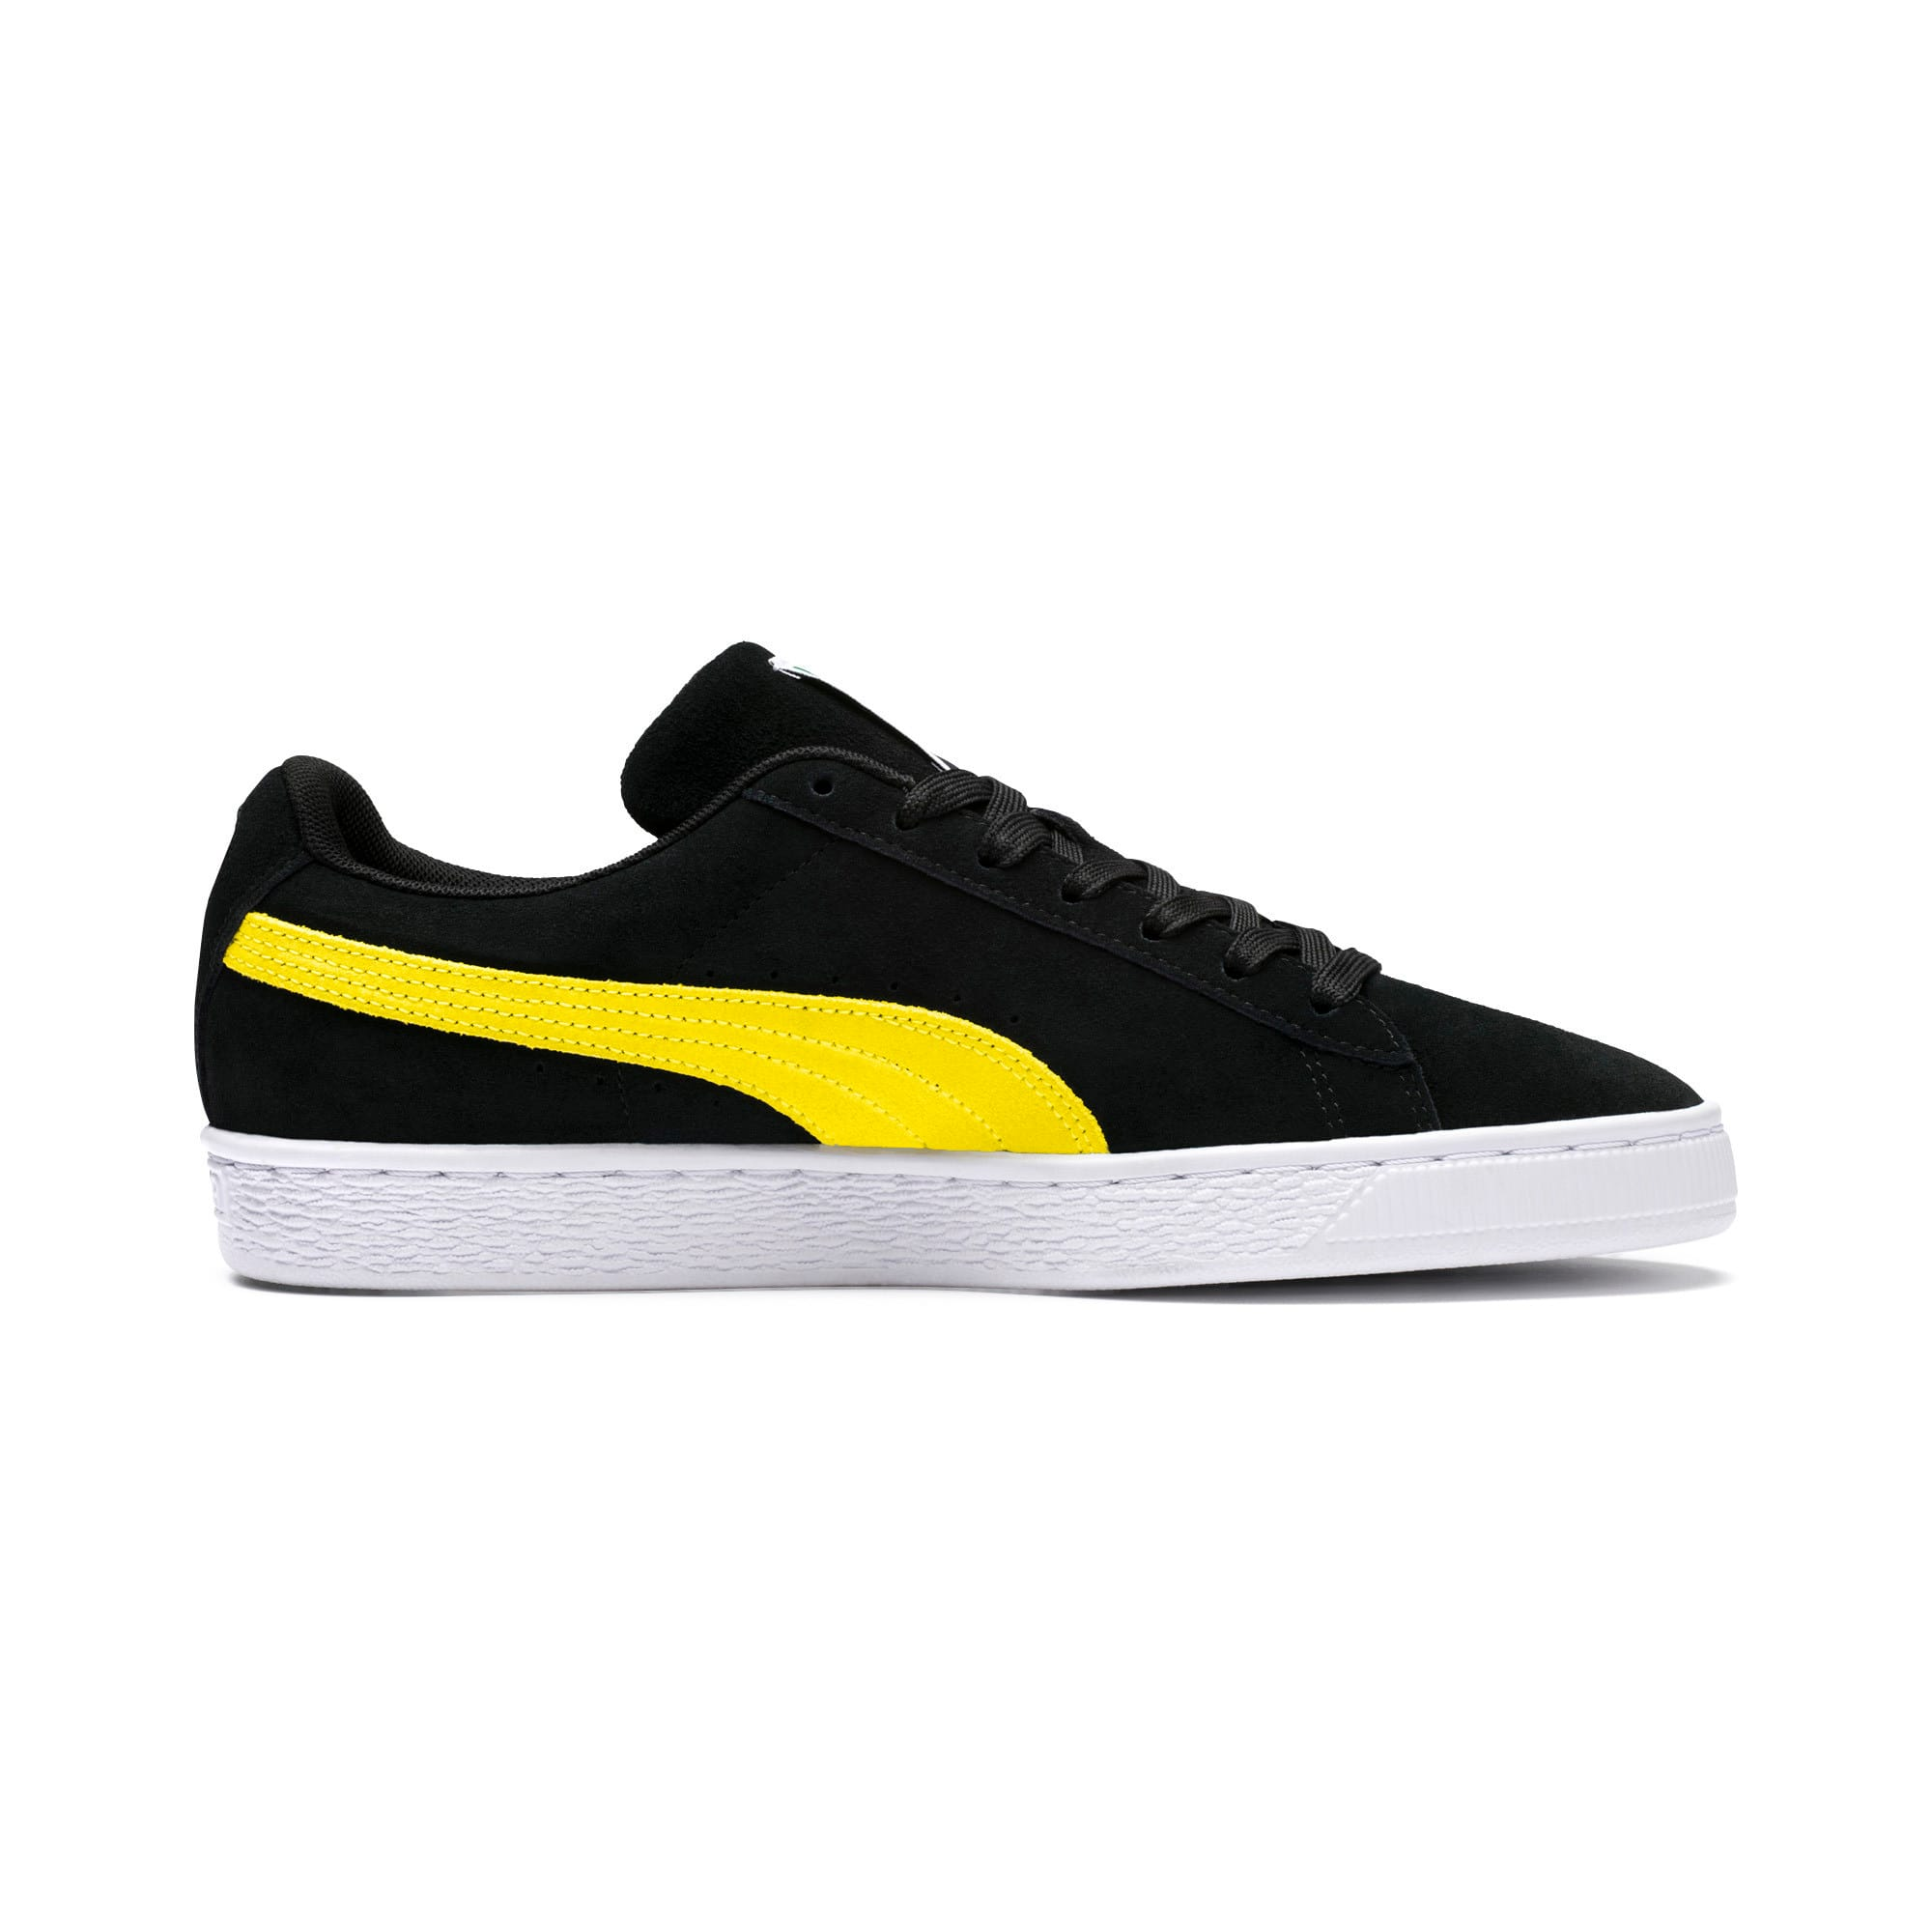 Thumbnail 5 of Suede Classic Trainers, Puma Black-Blazing Yellow, medium